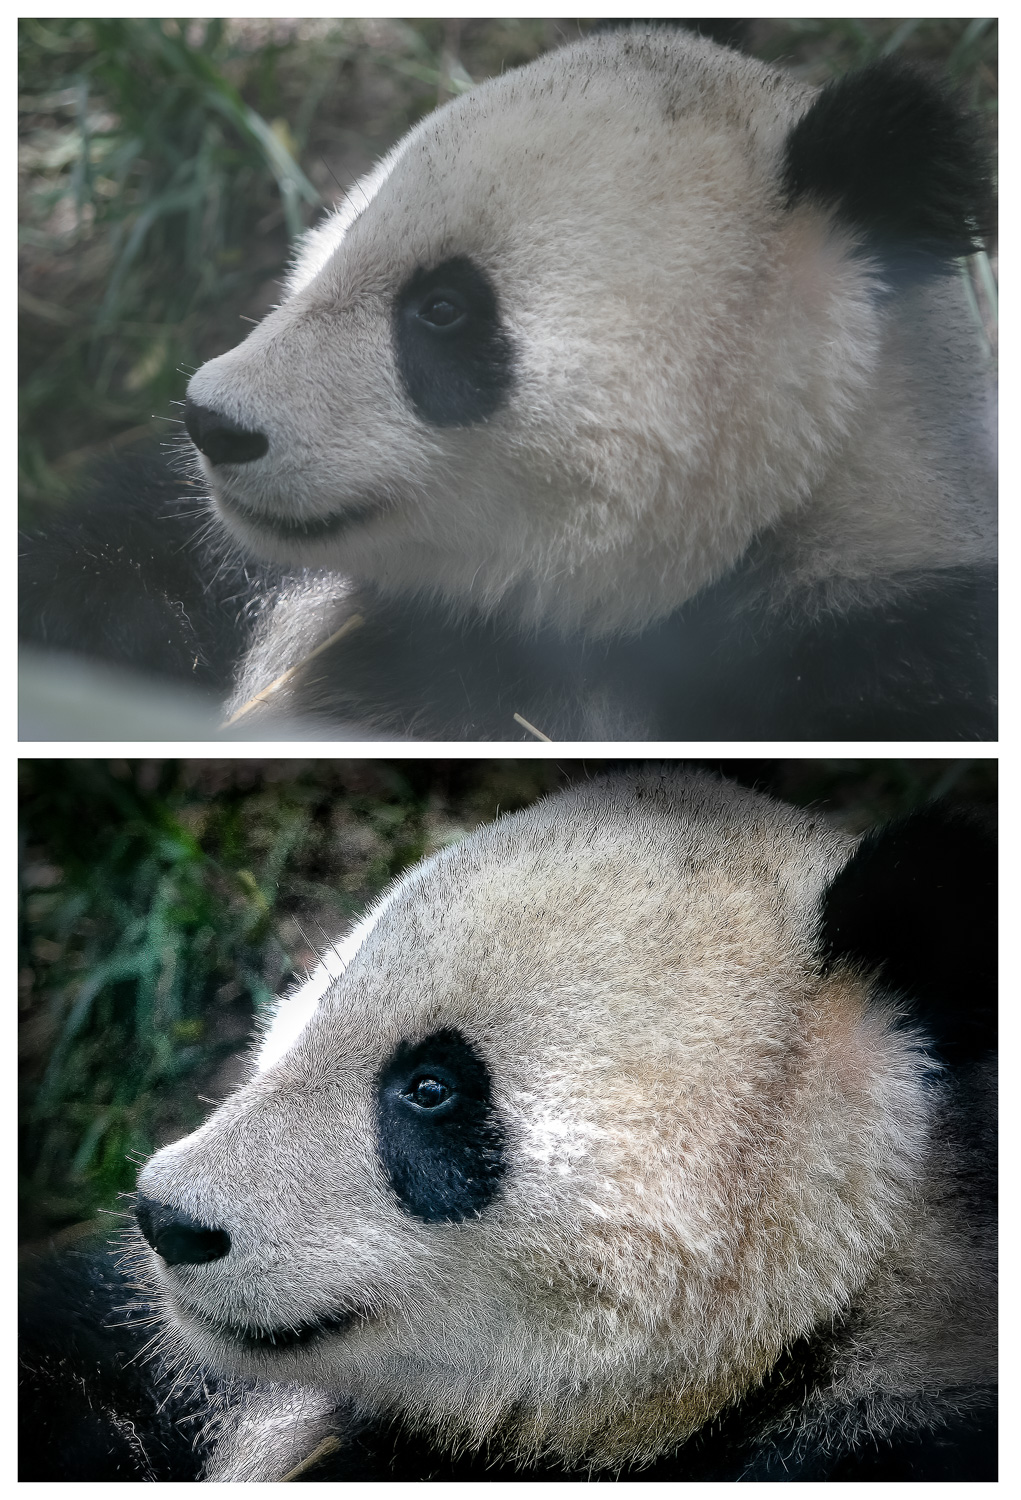 Image: Having to work through the glass, the top image is straight out of the camera. But, with some...